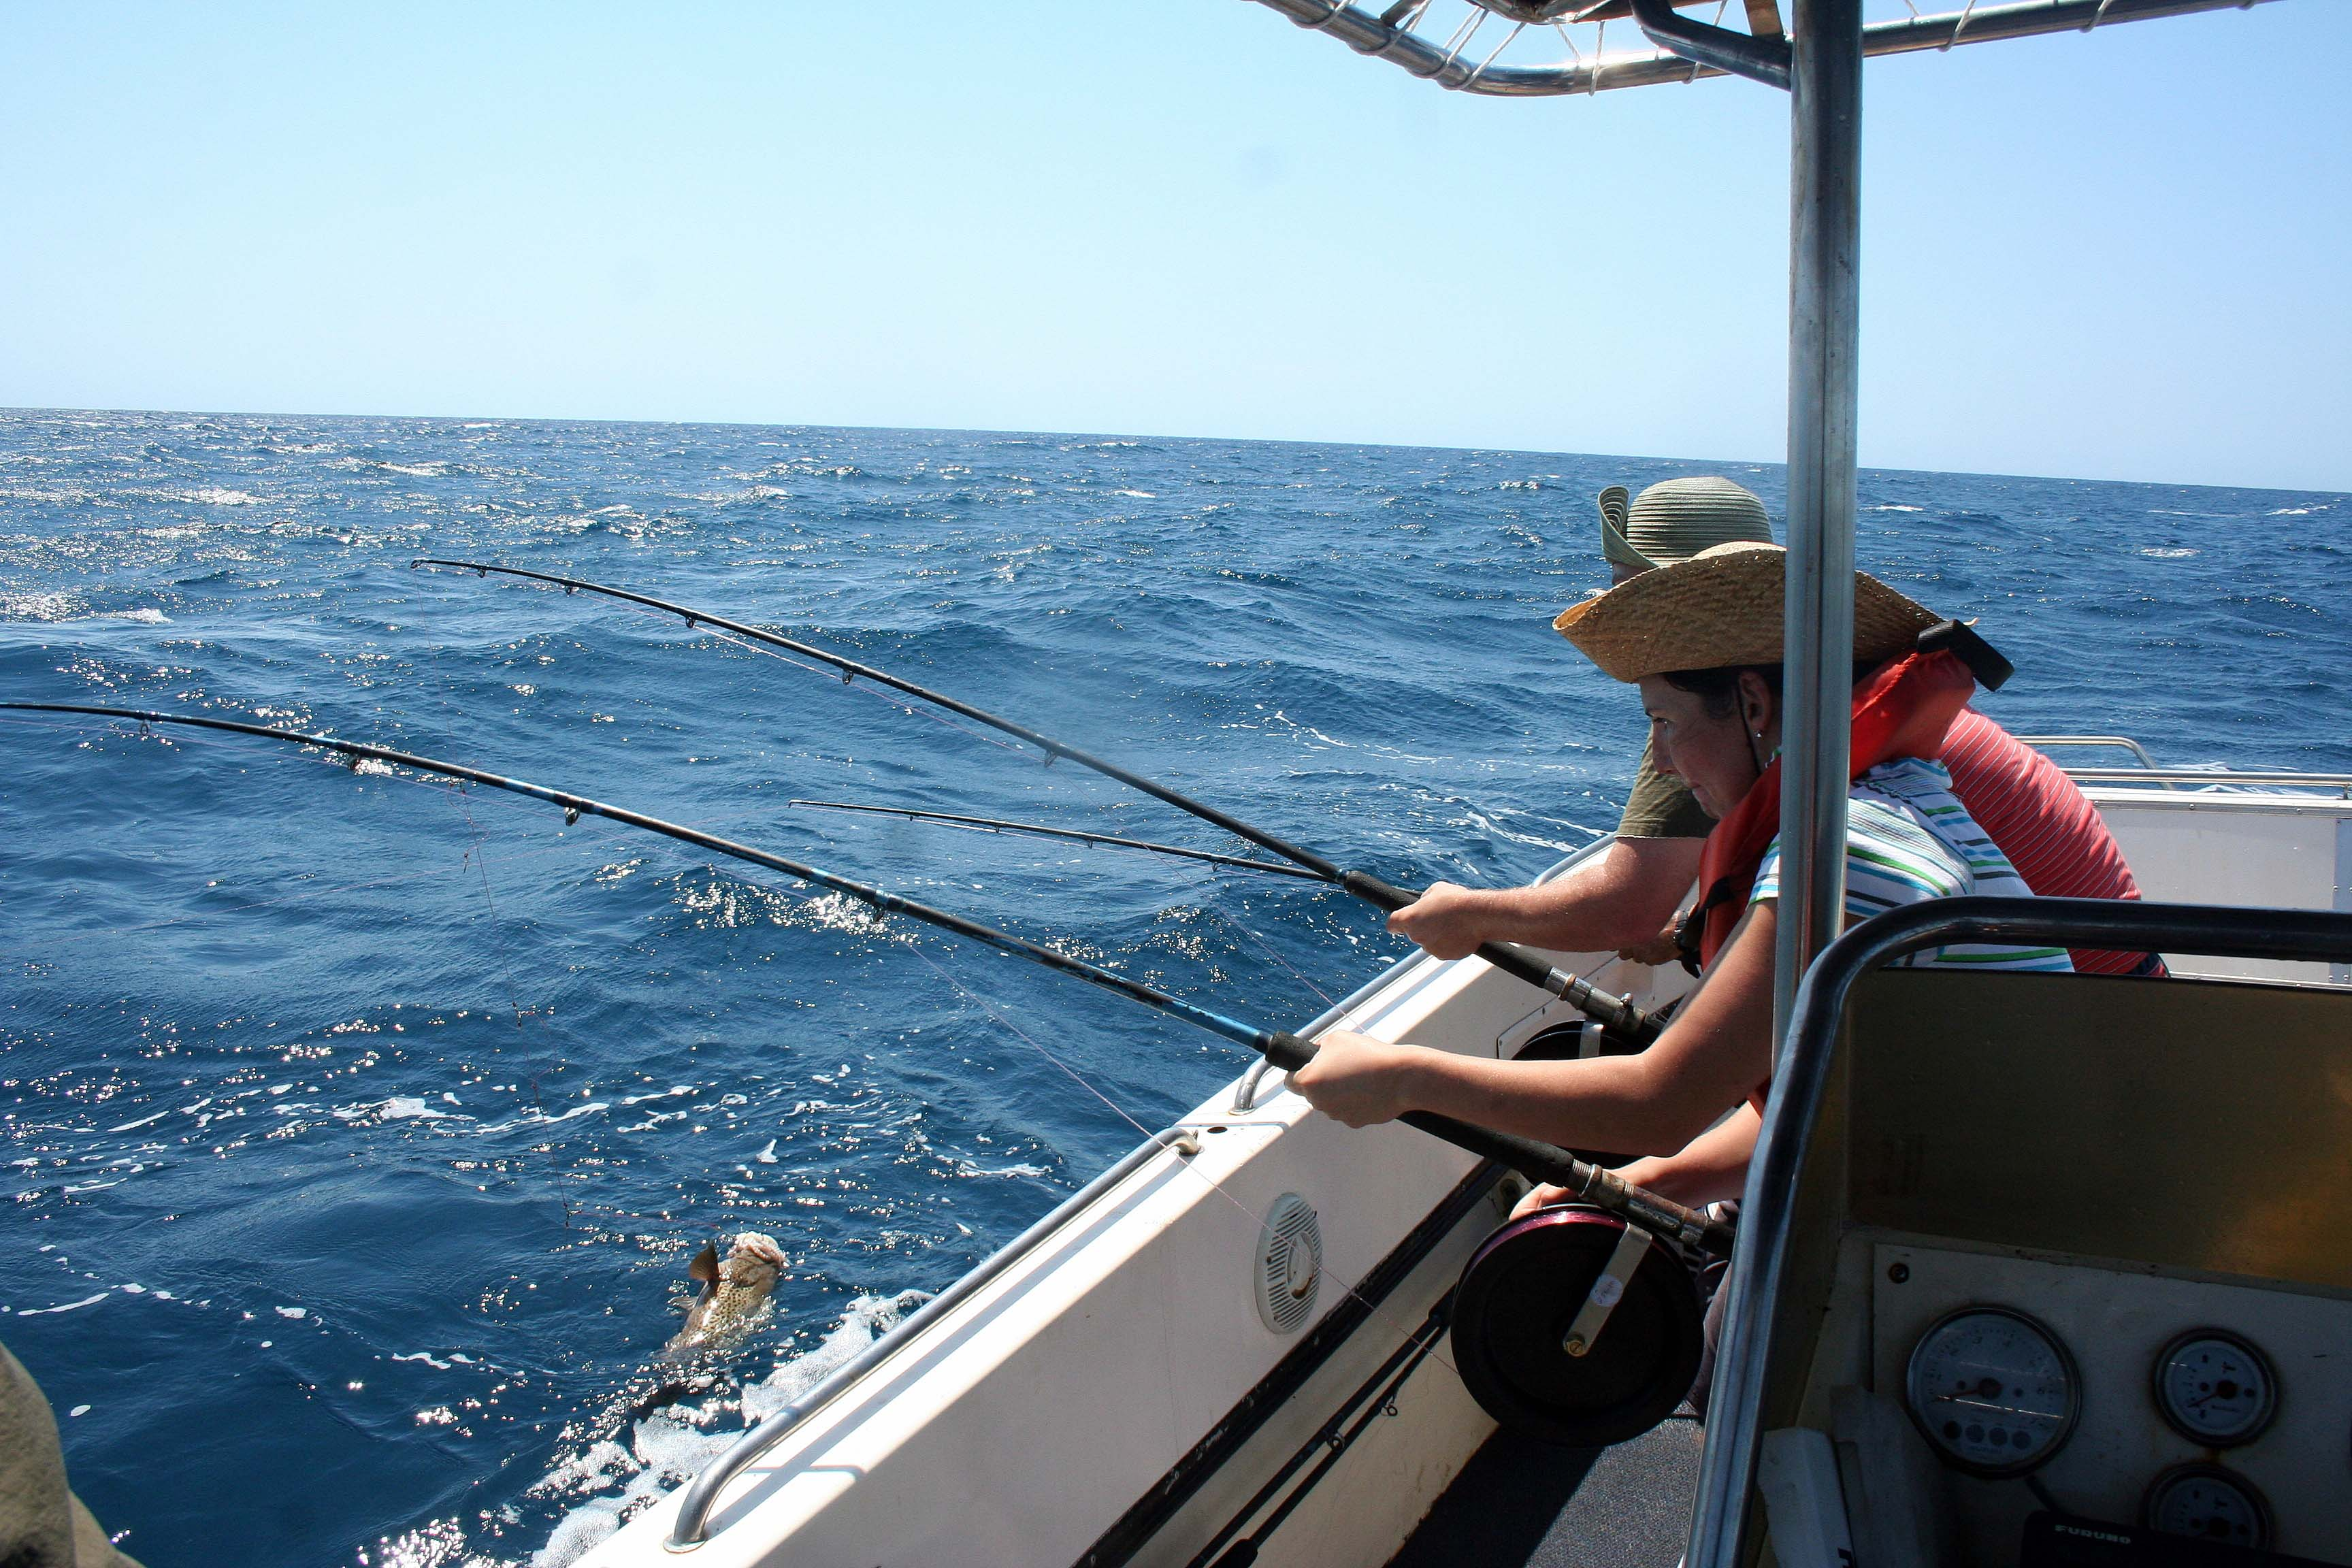 st lucia tours and charters deep sea fishing and boat